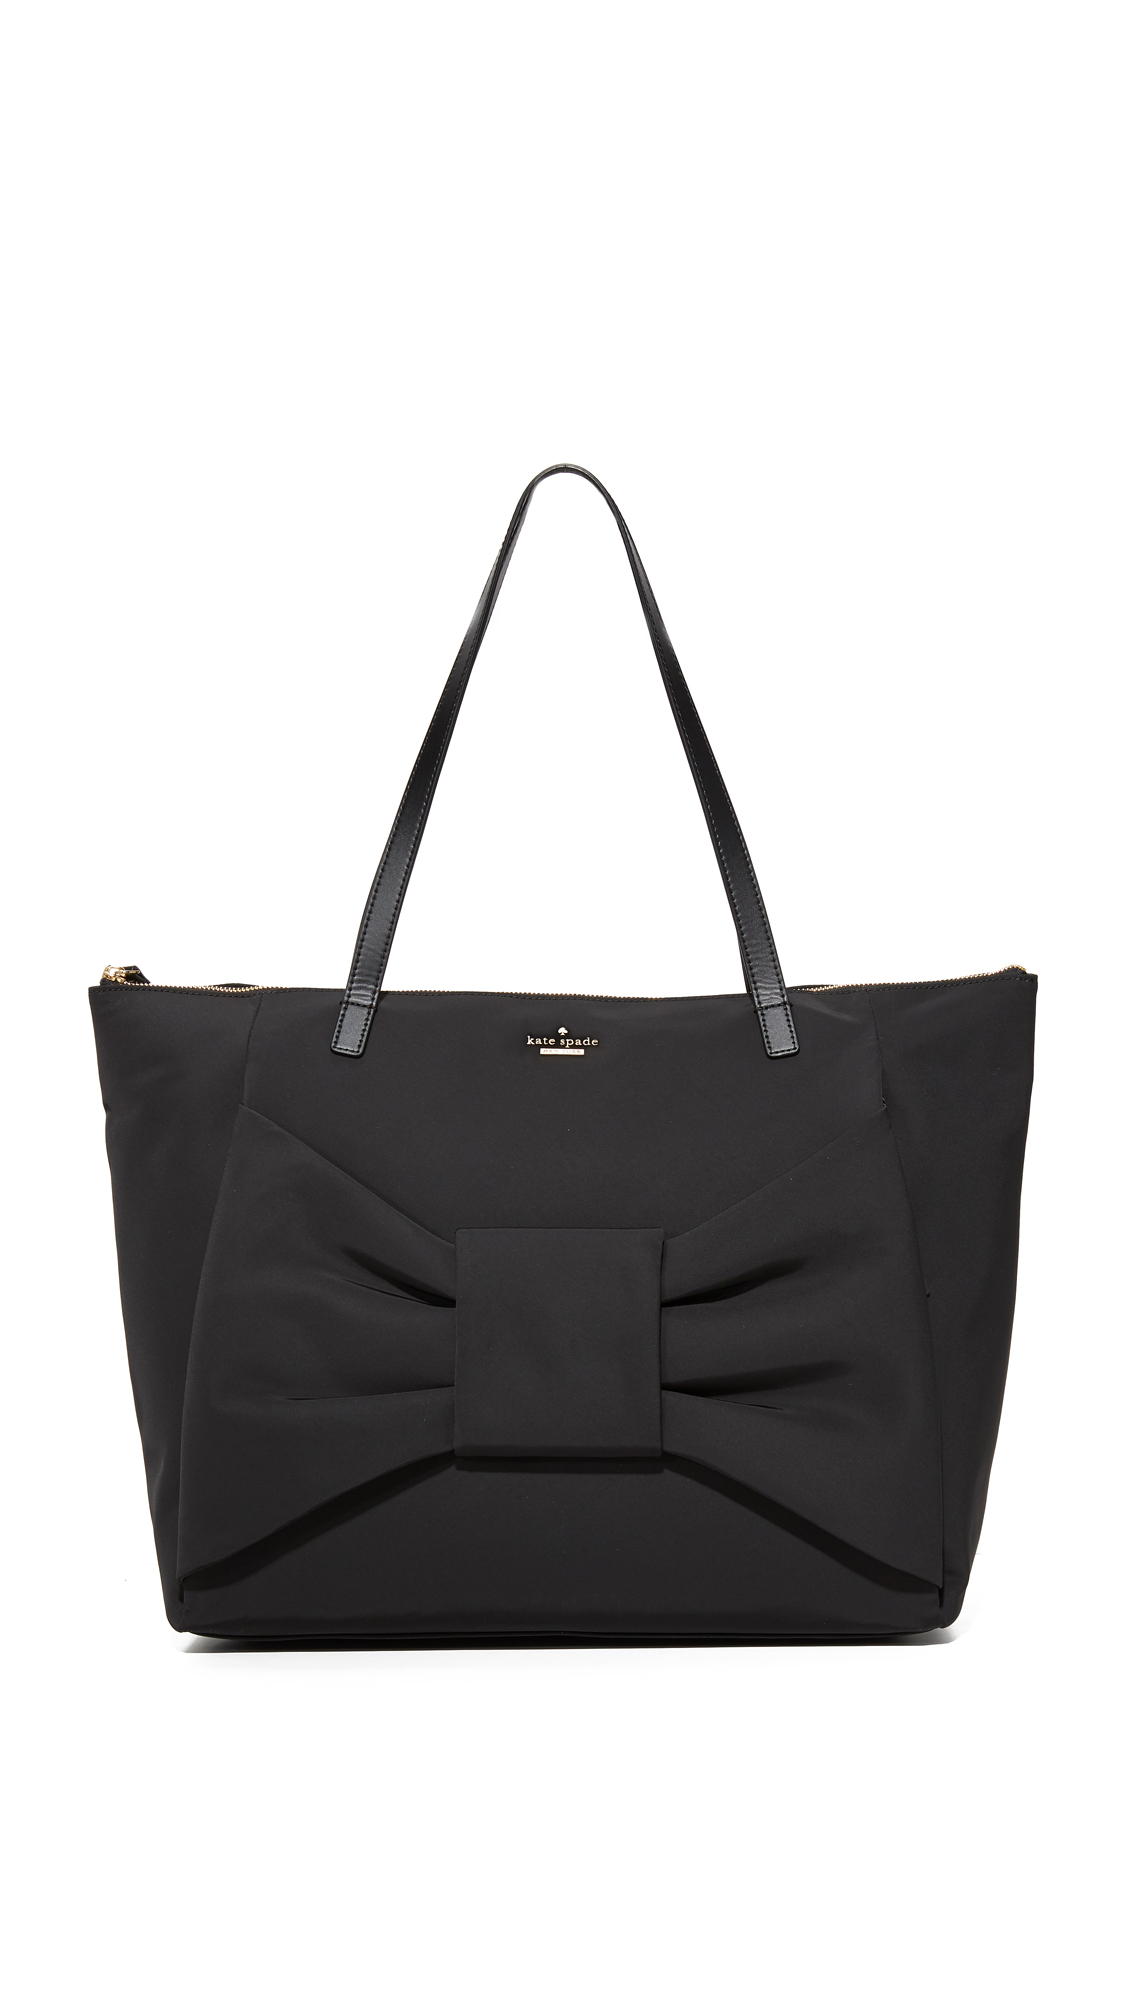 95f285e5d025 Kate Spade New York Kenna Tote in Black